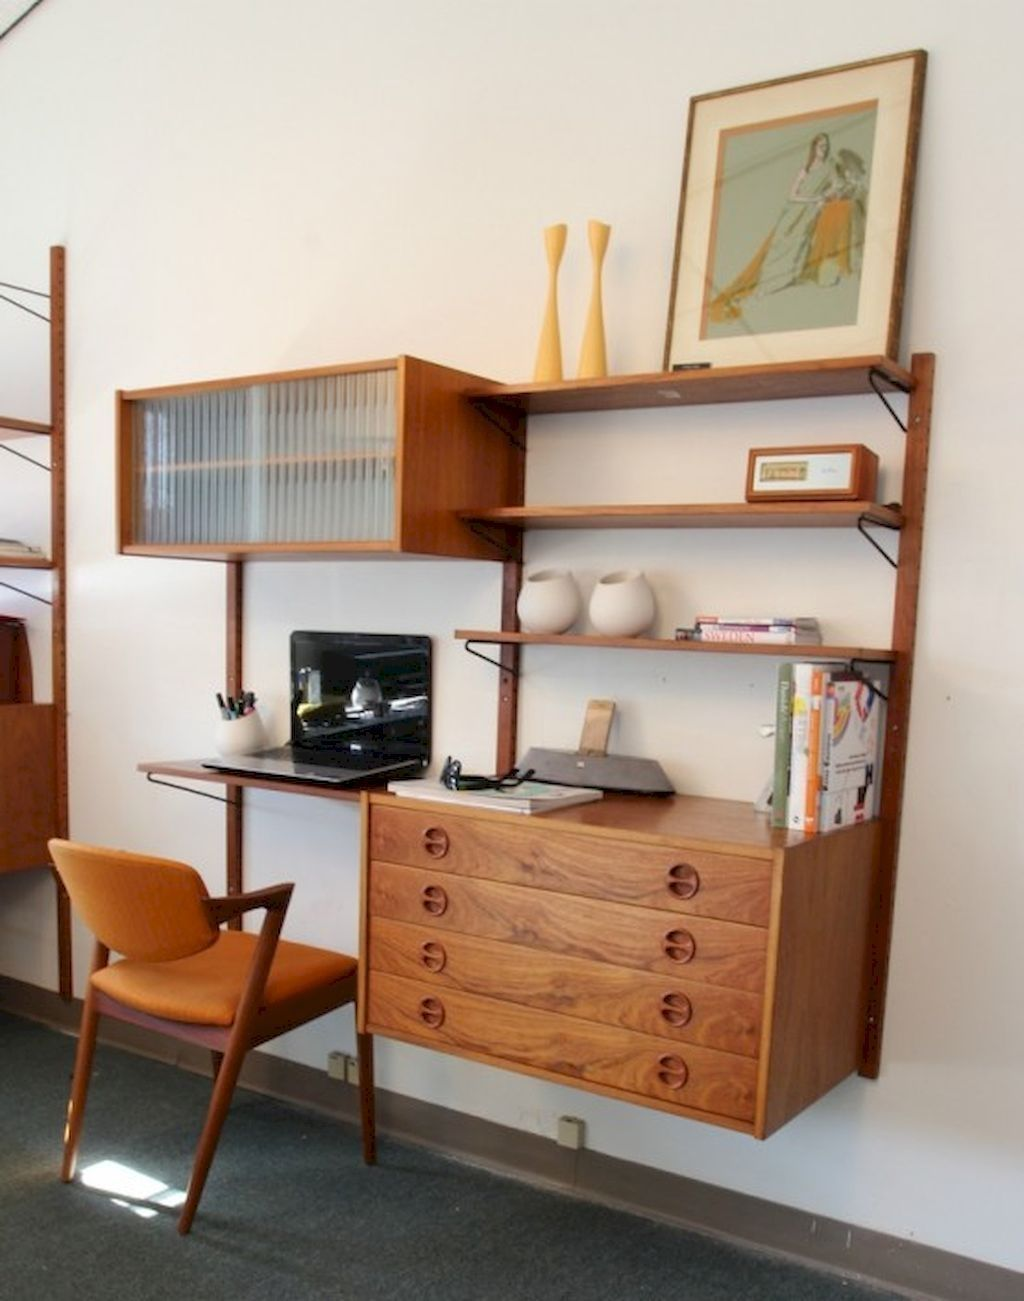 30 Functional And Creative Home Office Ideas: 39 Smart And Creative Decorating Workspaces Ideas